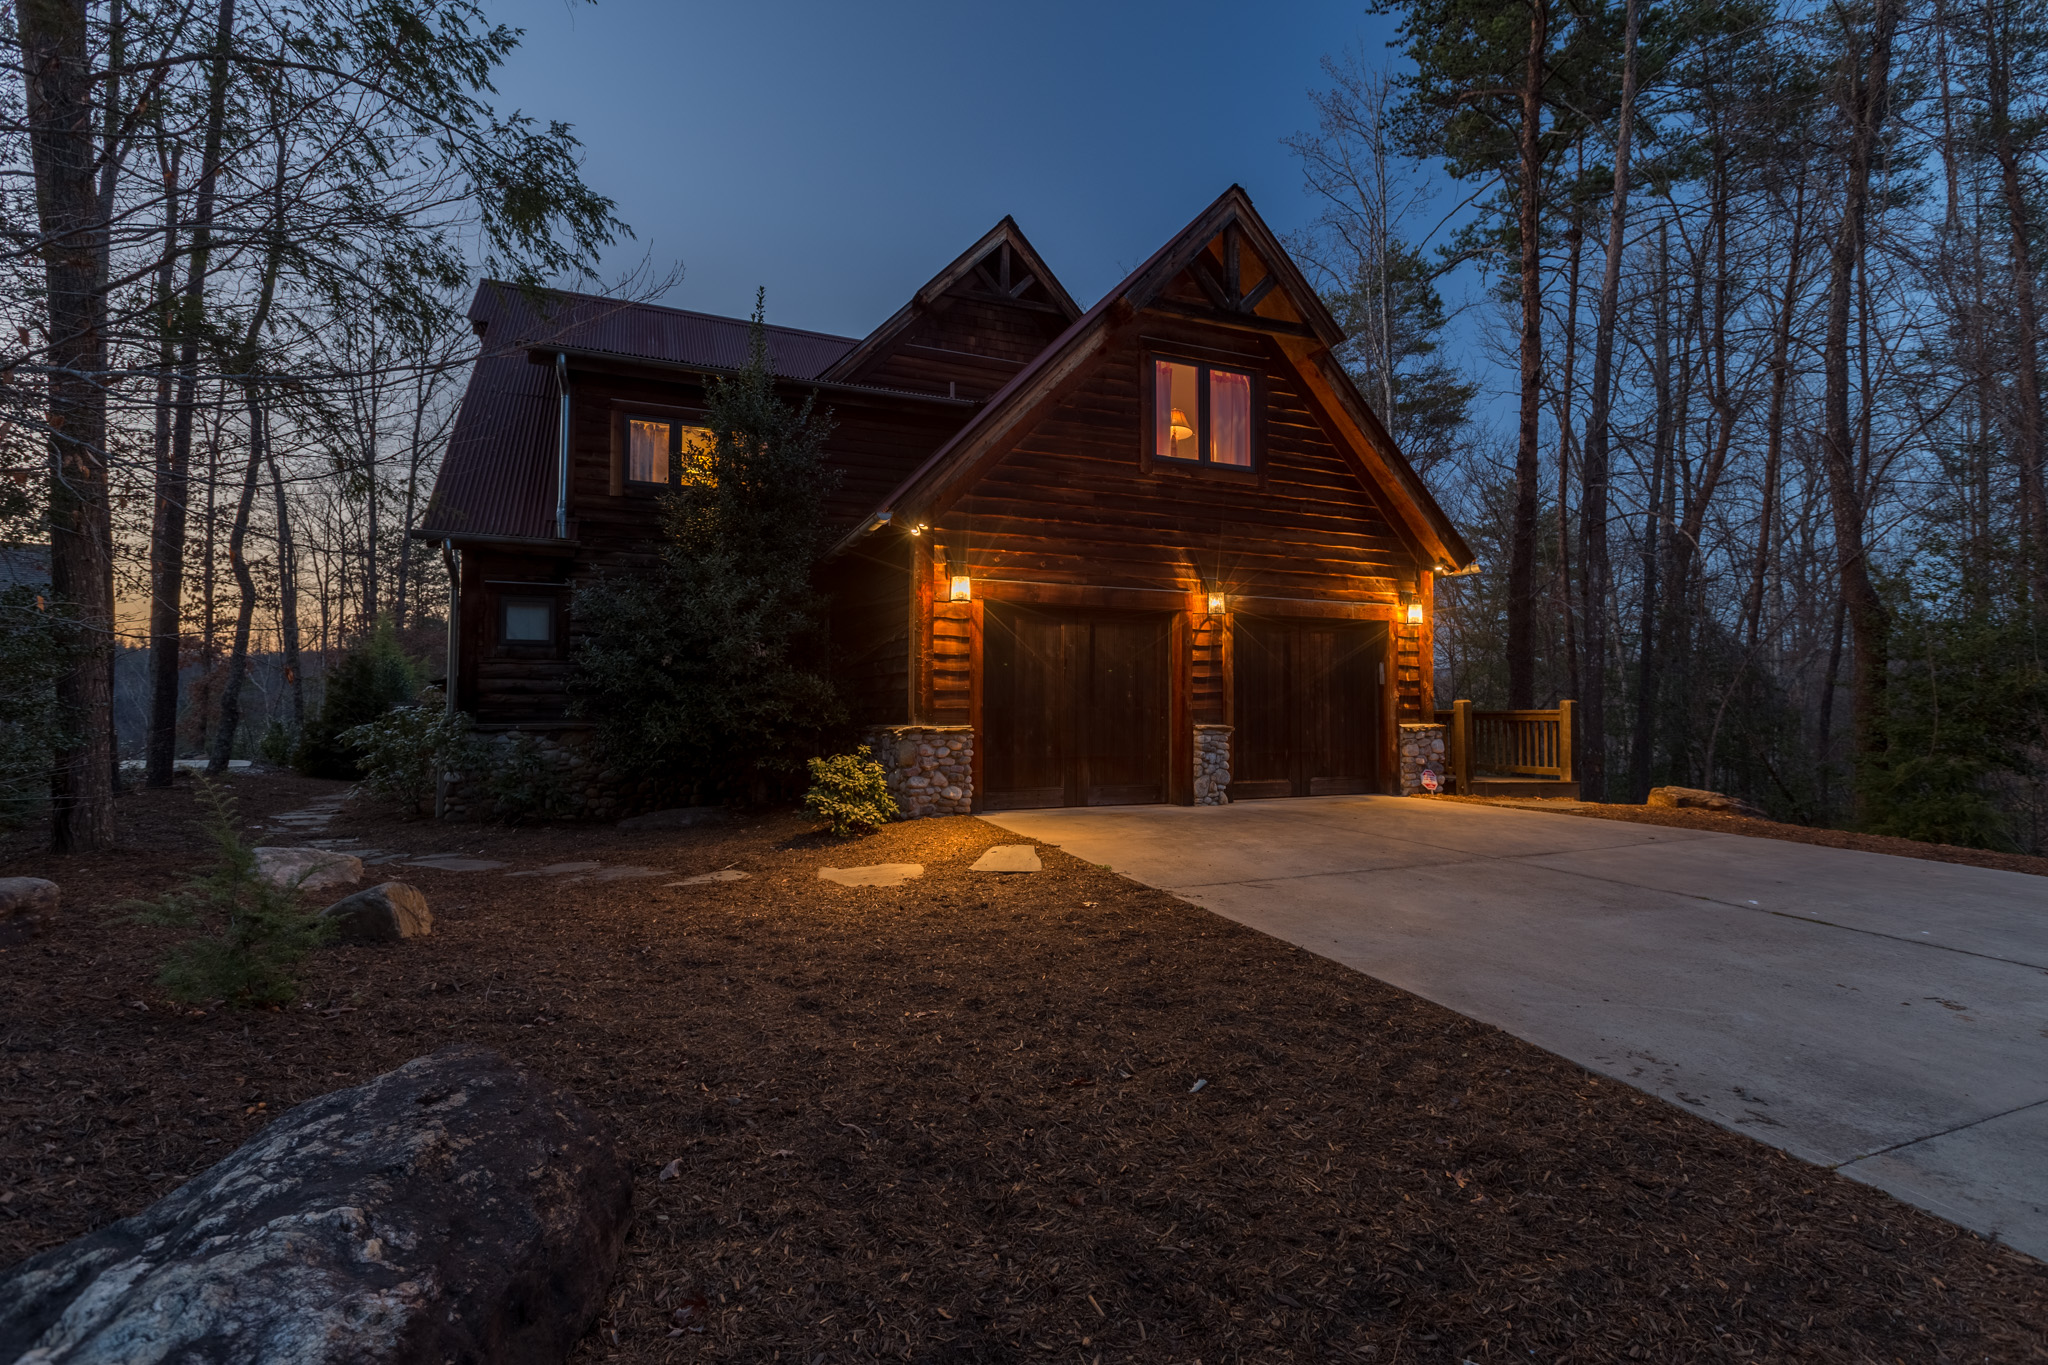 Front view of cabin on Lake James shot at night. Lights are causing a warm glow and looks very inviting